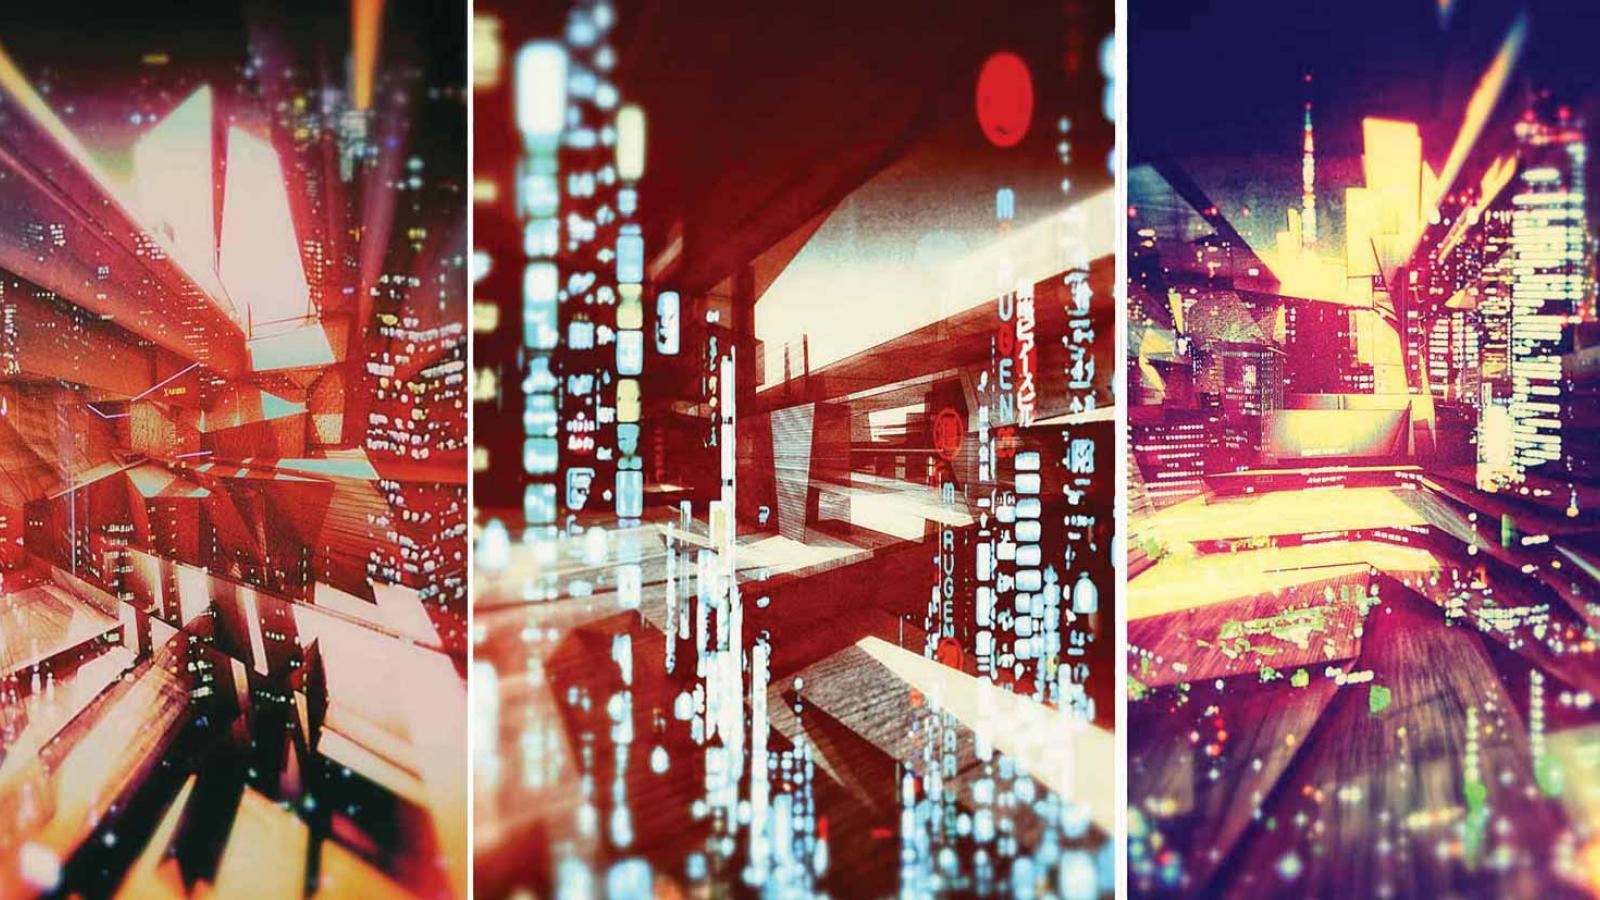 Outstanding Graphic Projects by Atelier Olschinsky